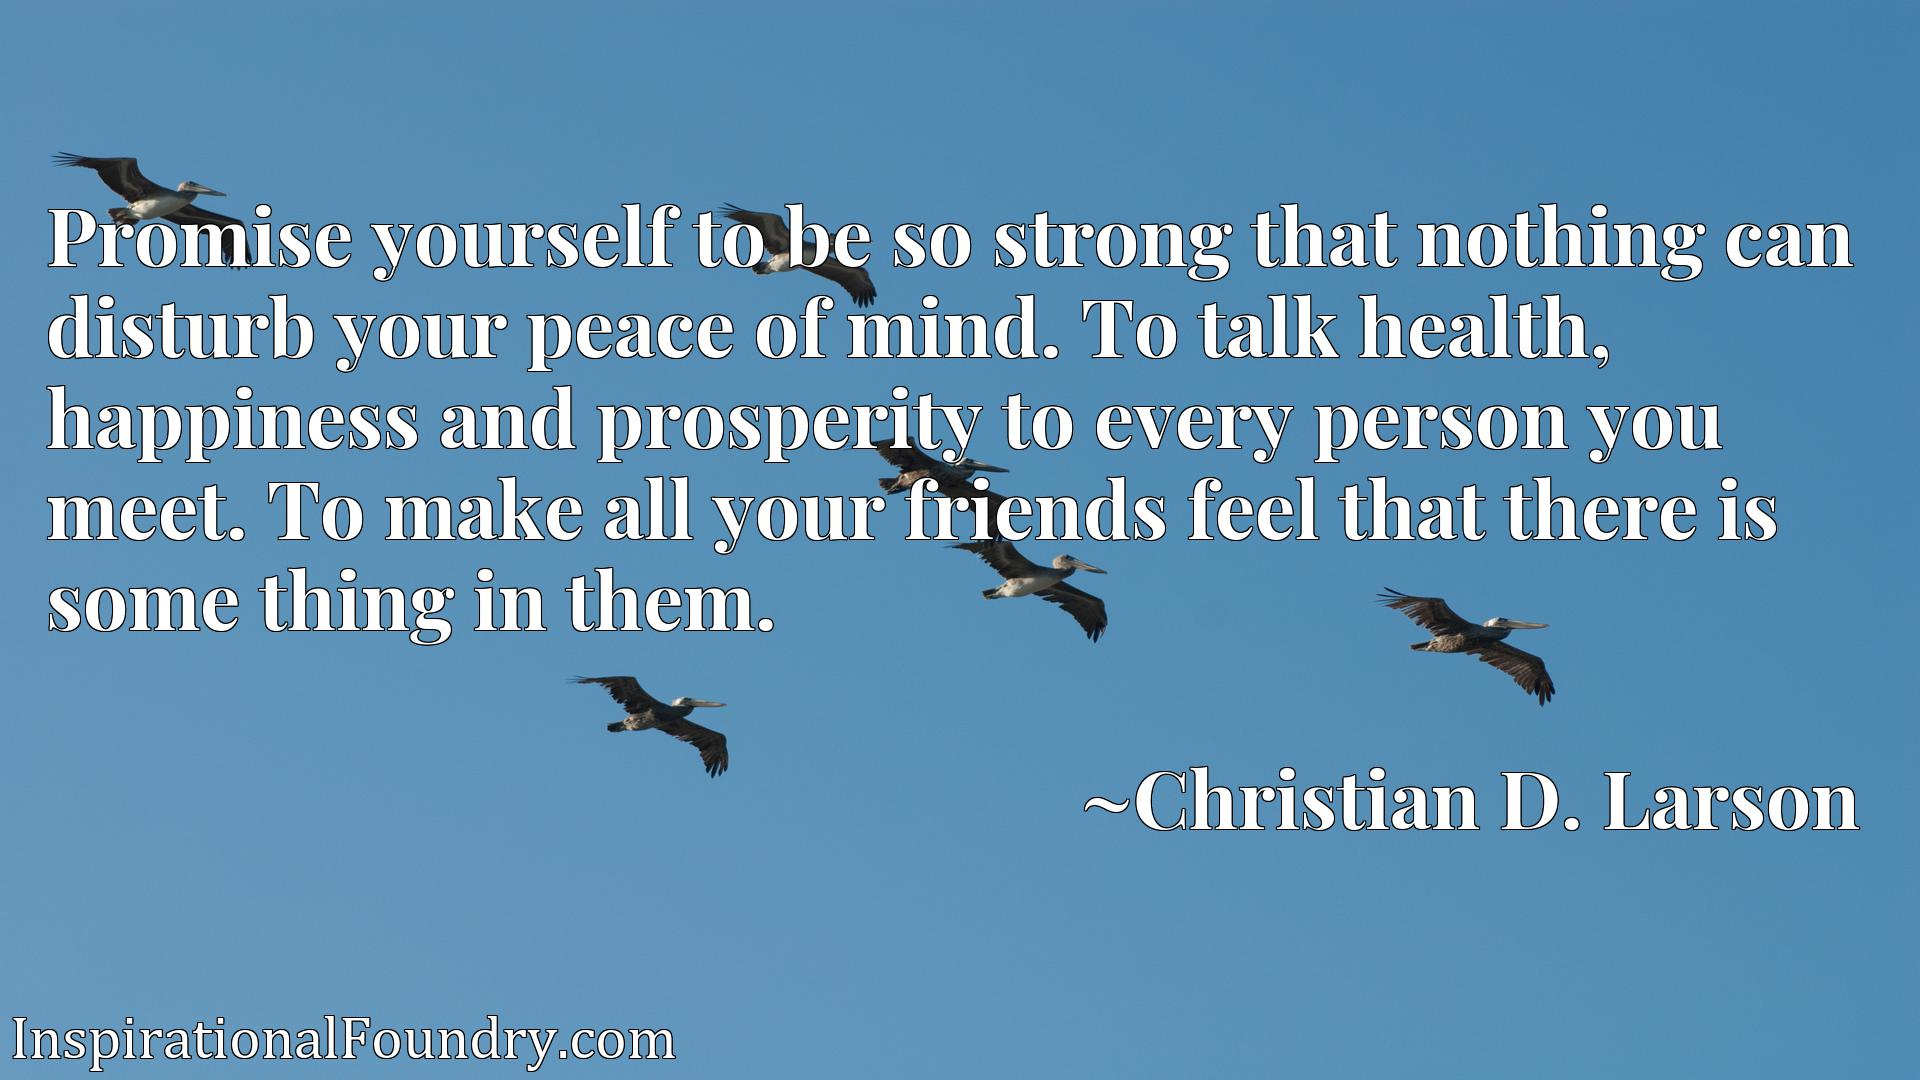 Promise yourself to be so strong that nothing can disturb your peace of mind. To talk health, happiness and prosperity to every person you meet. To make all your friends feel that there is some thing in them.